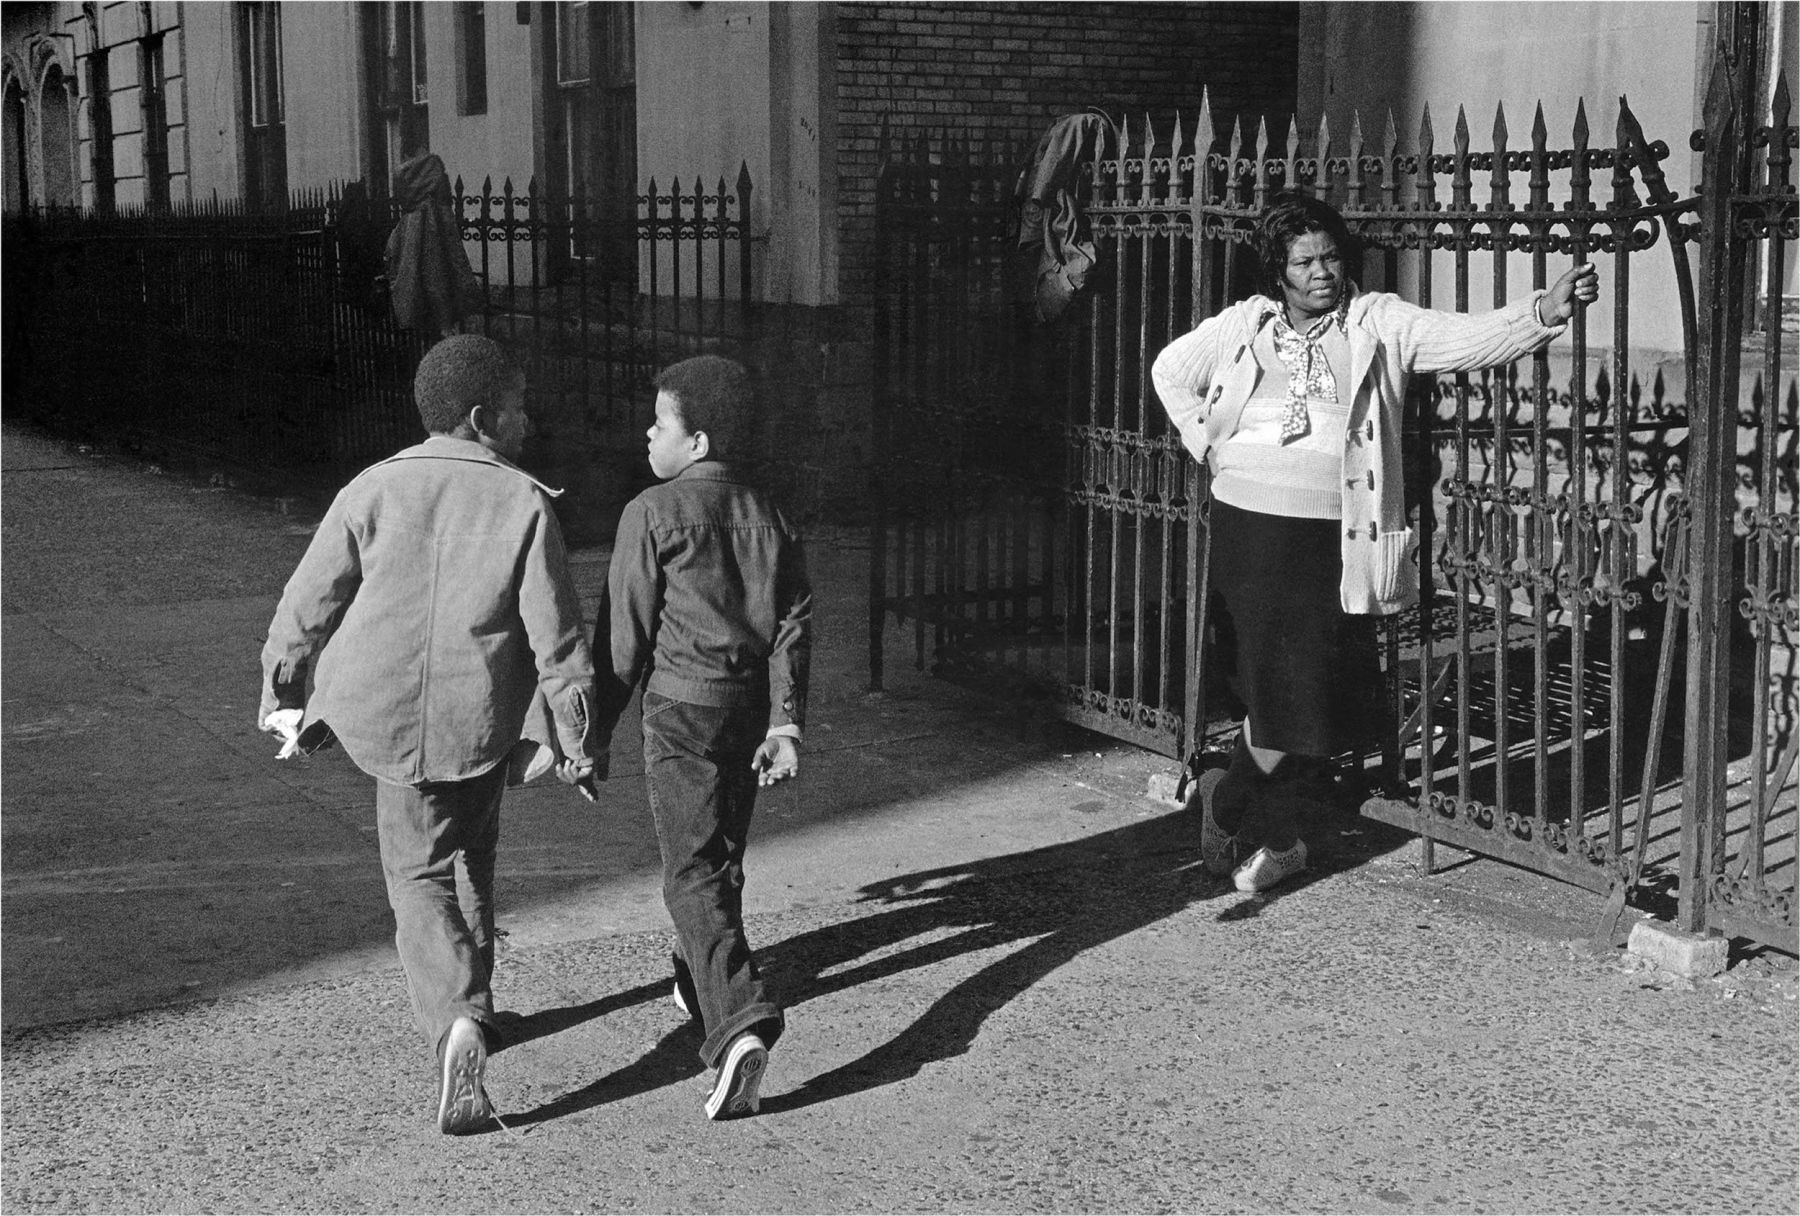 A Woman and Two Boys Passing, 1978